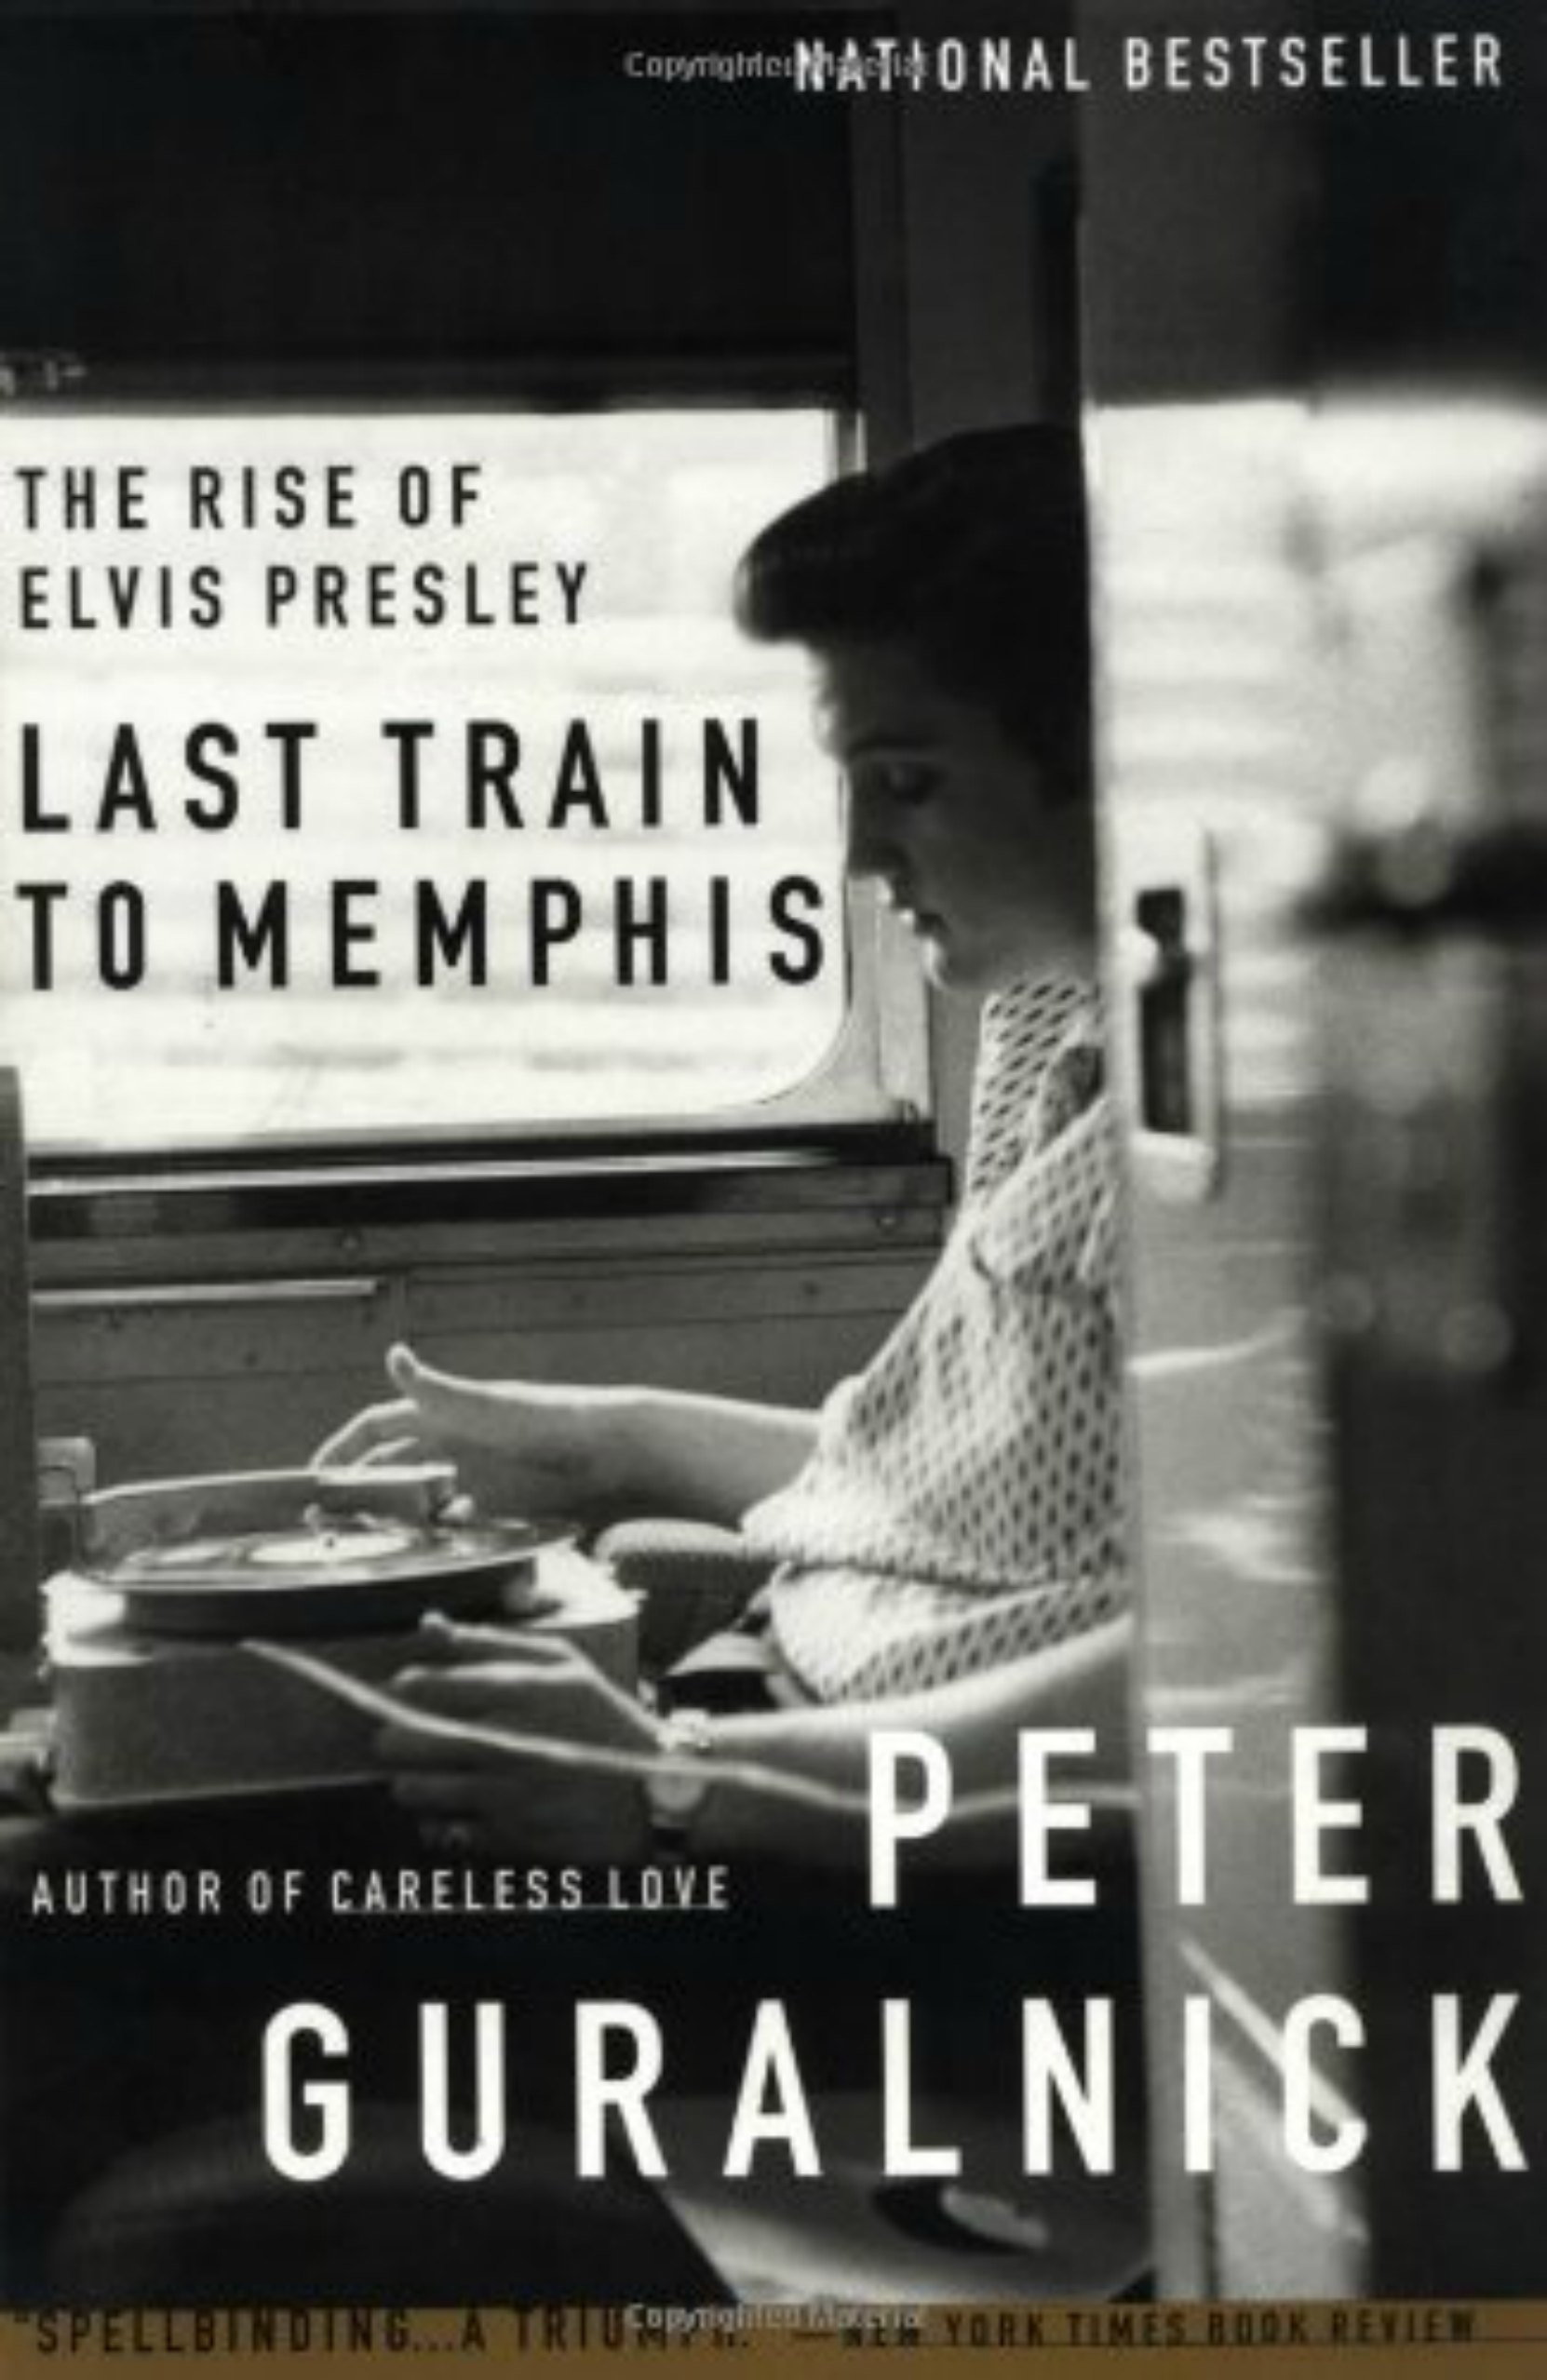 Book cover, Last Train To Memphis - The Rise of Elvis Presley by Peter Guralnick